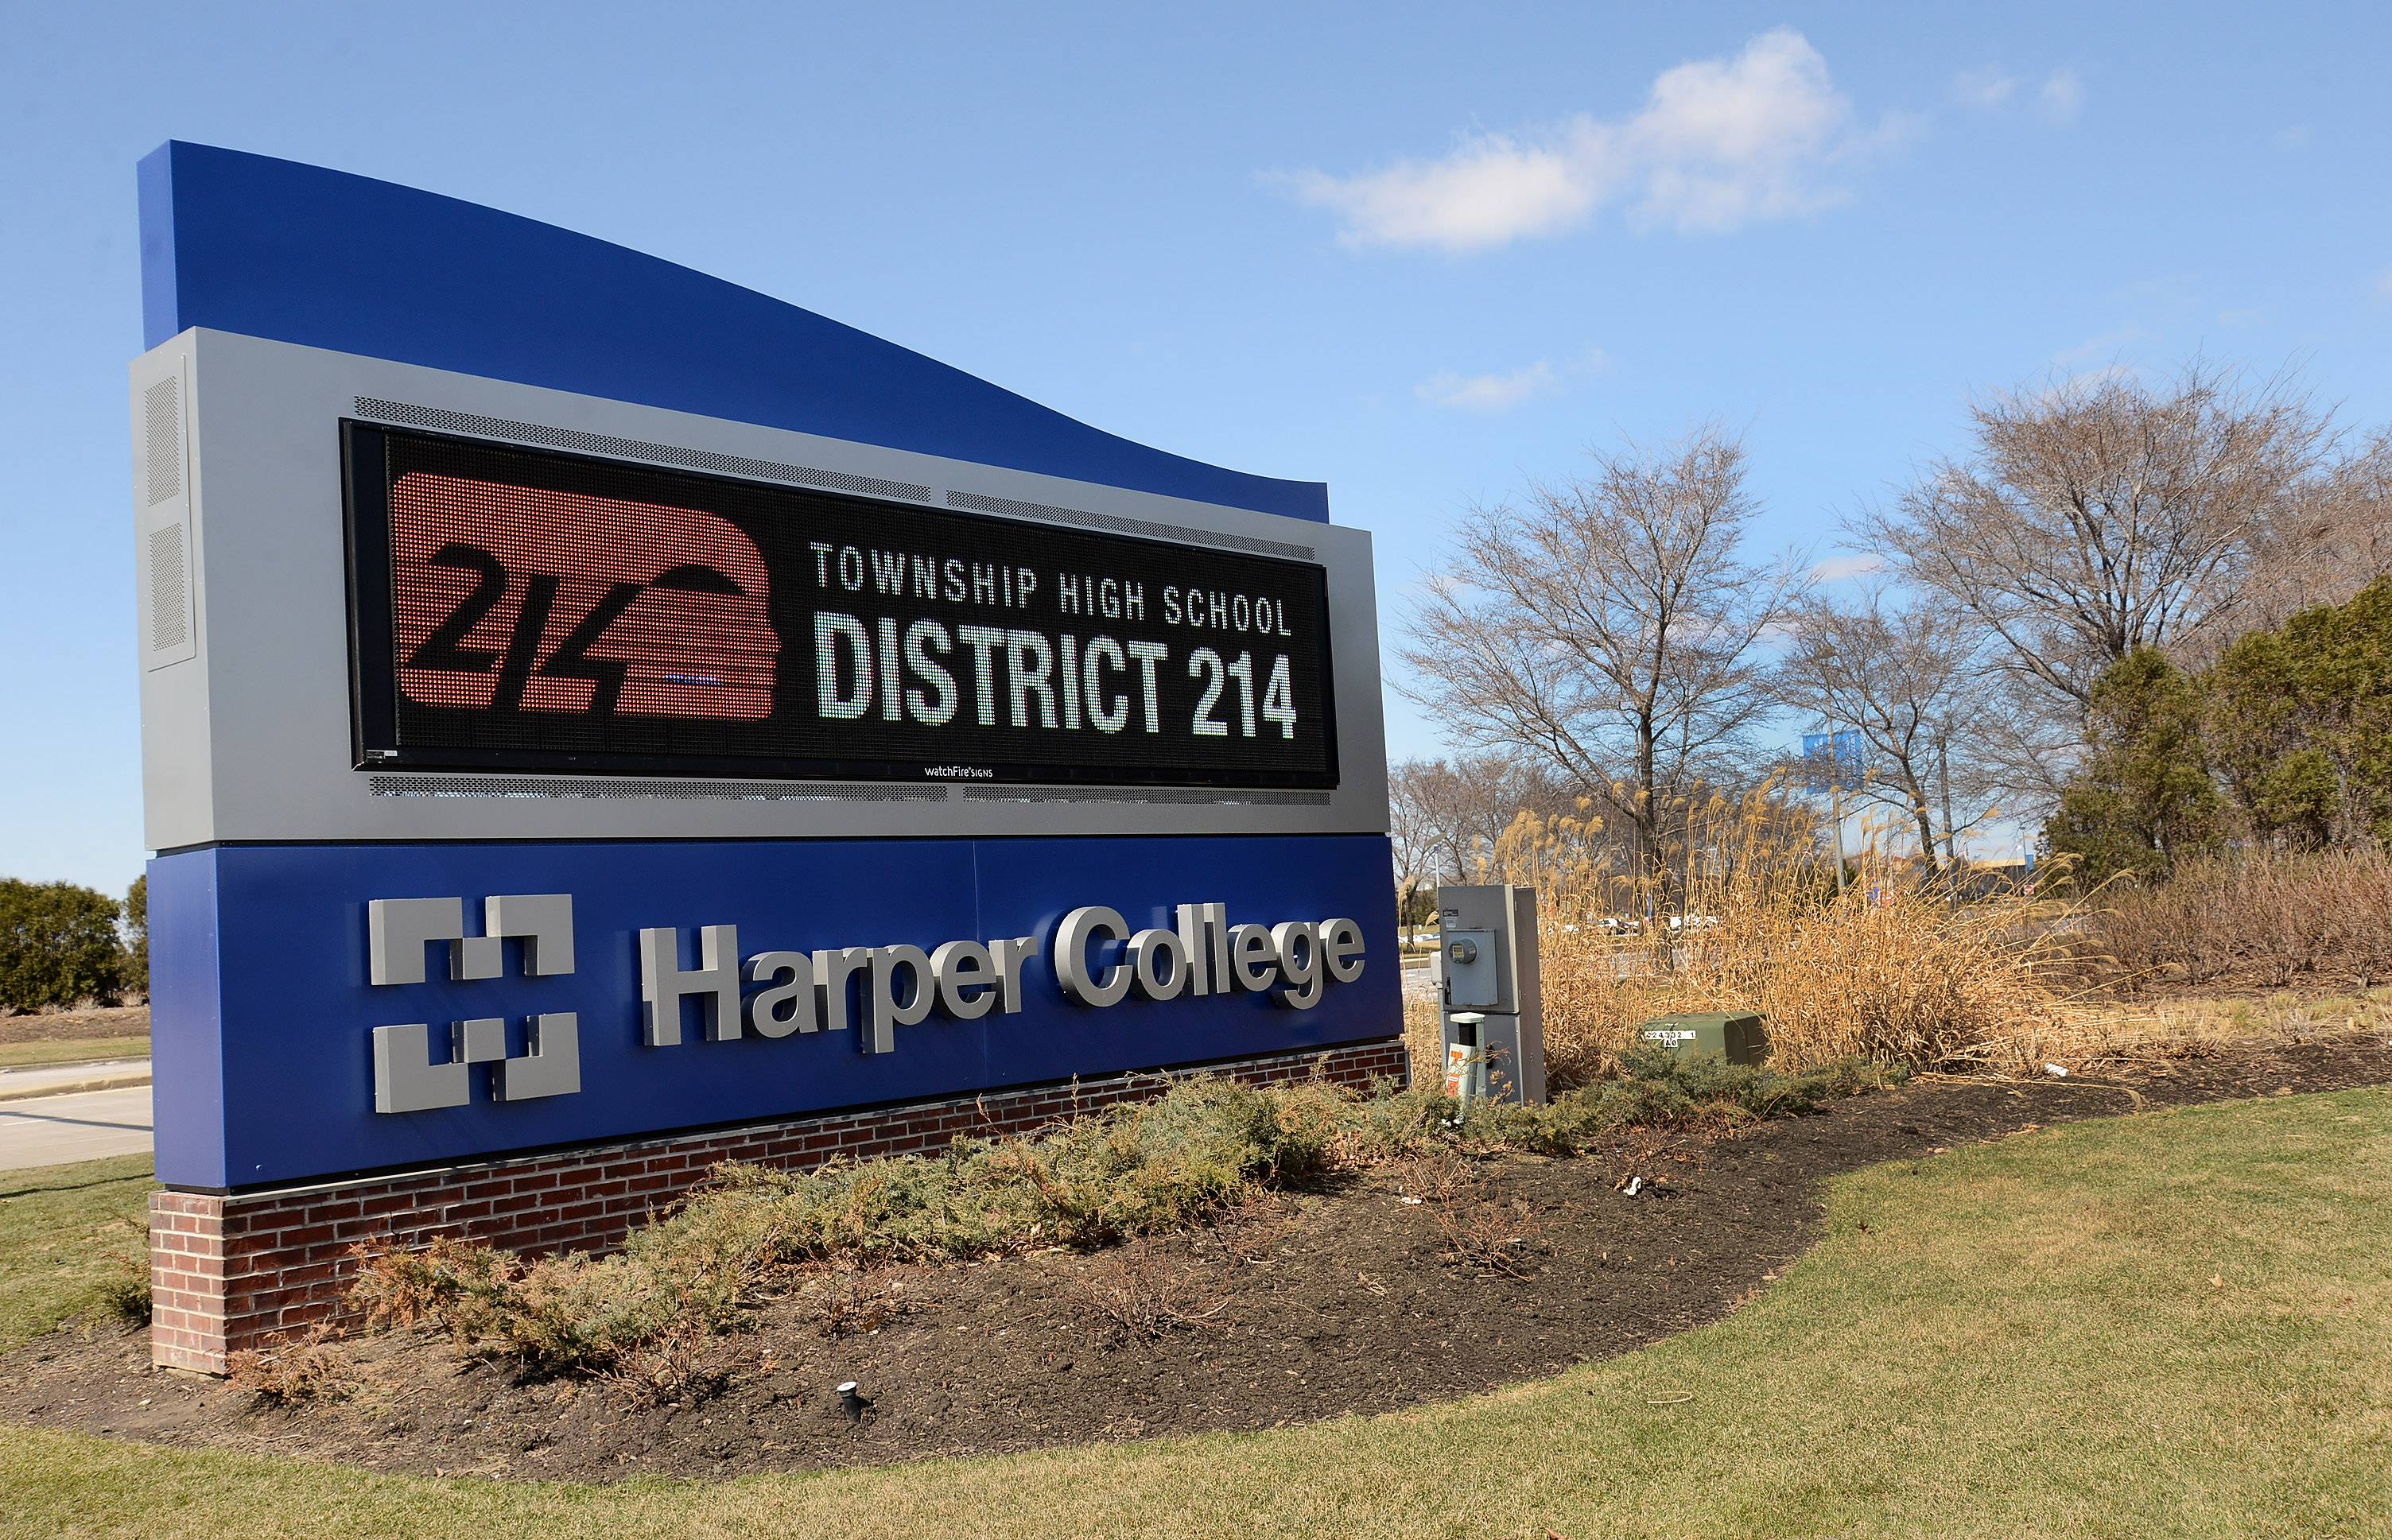 Harper College promises two years of free tuition